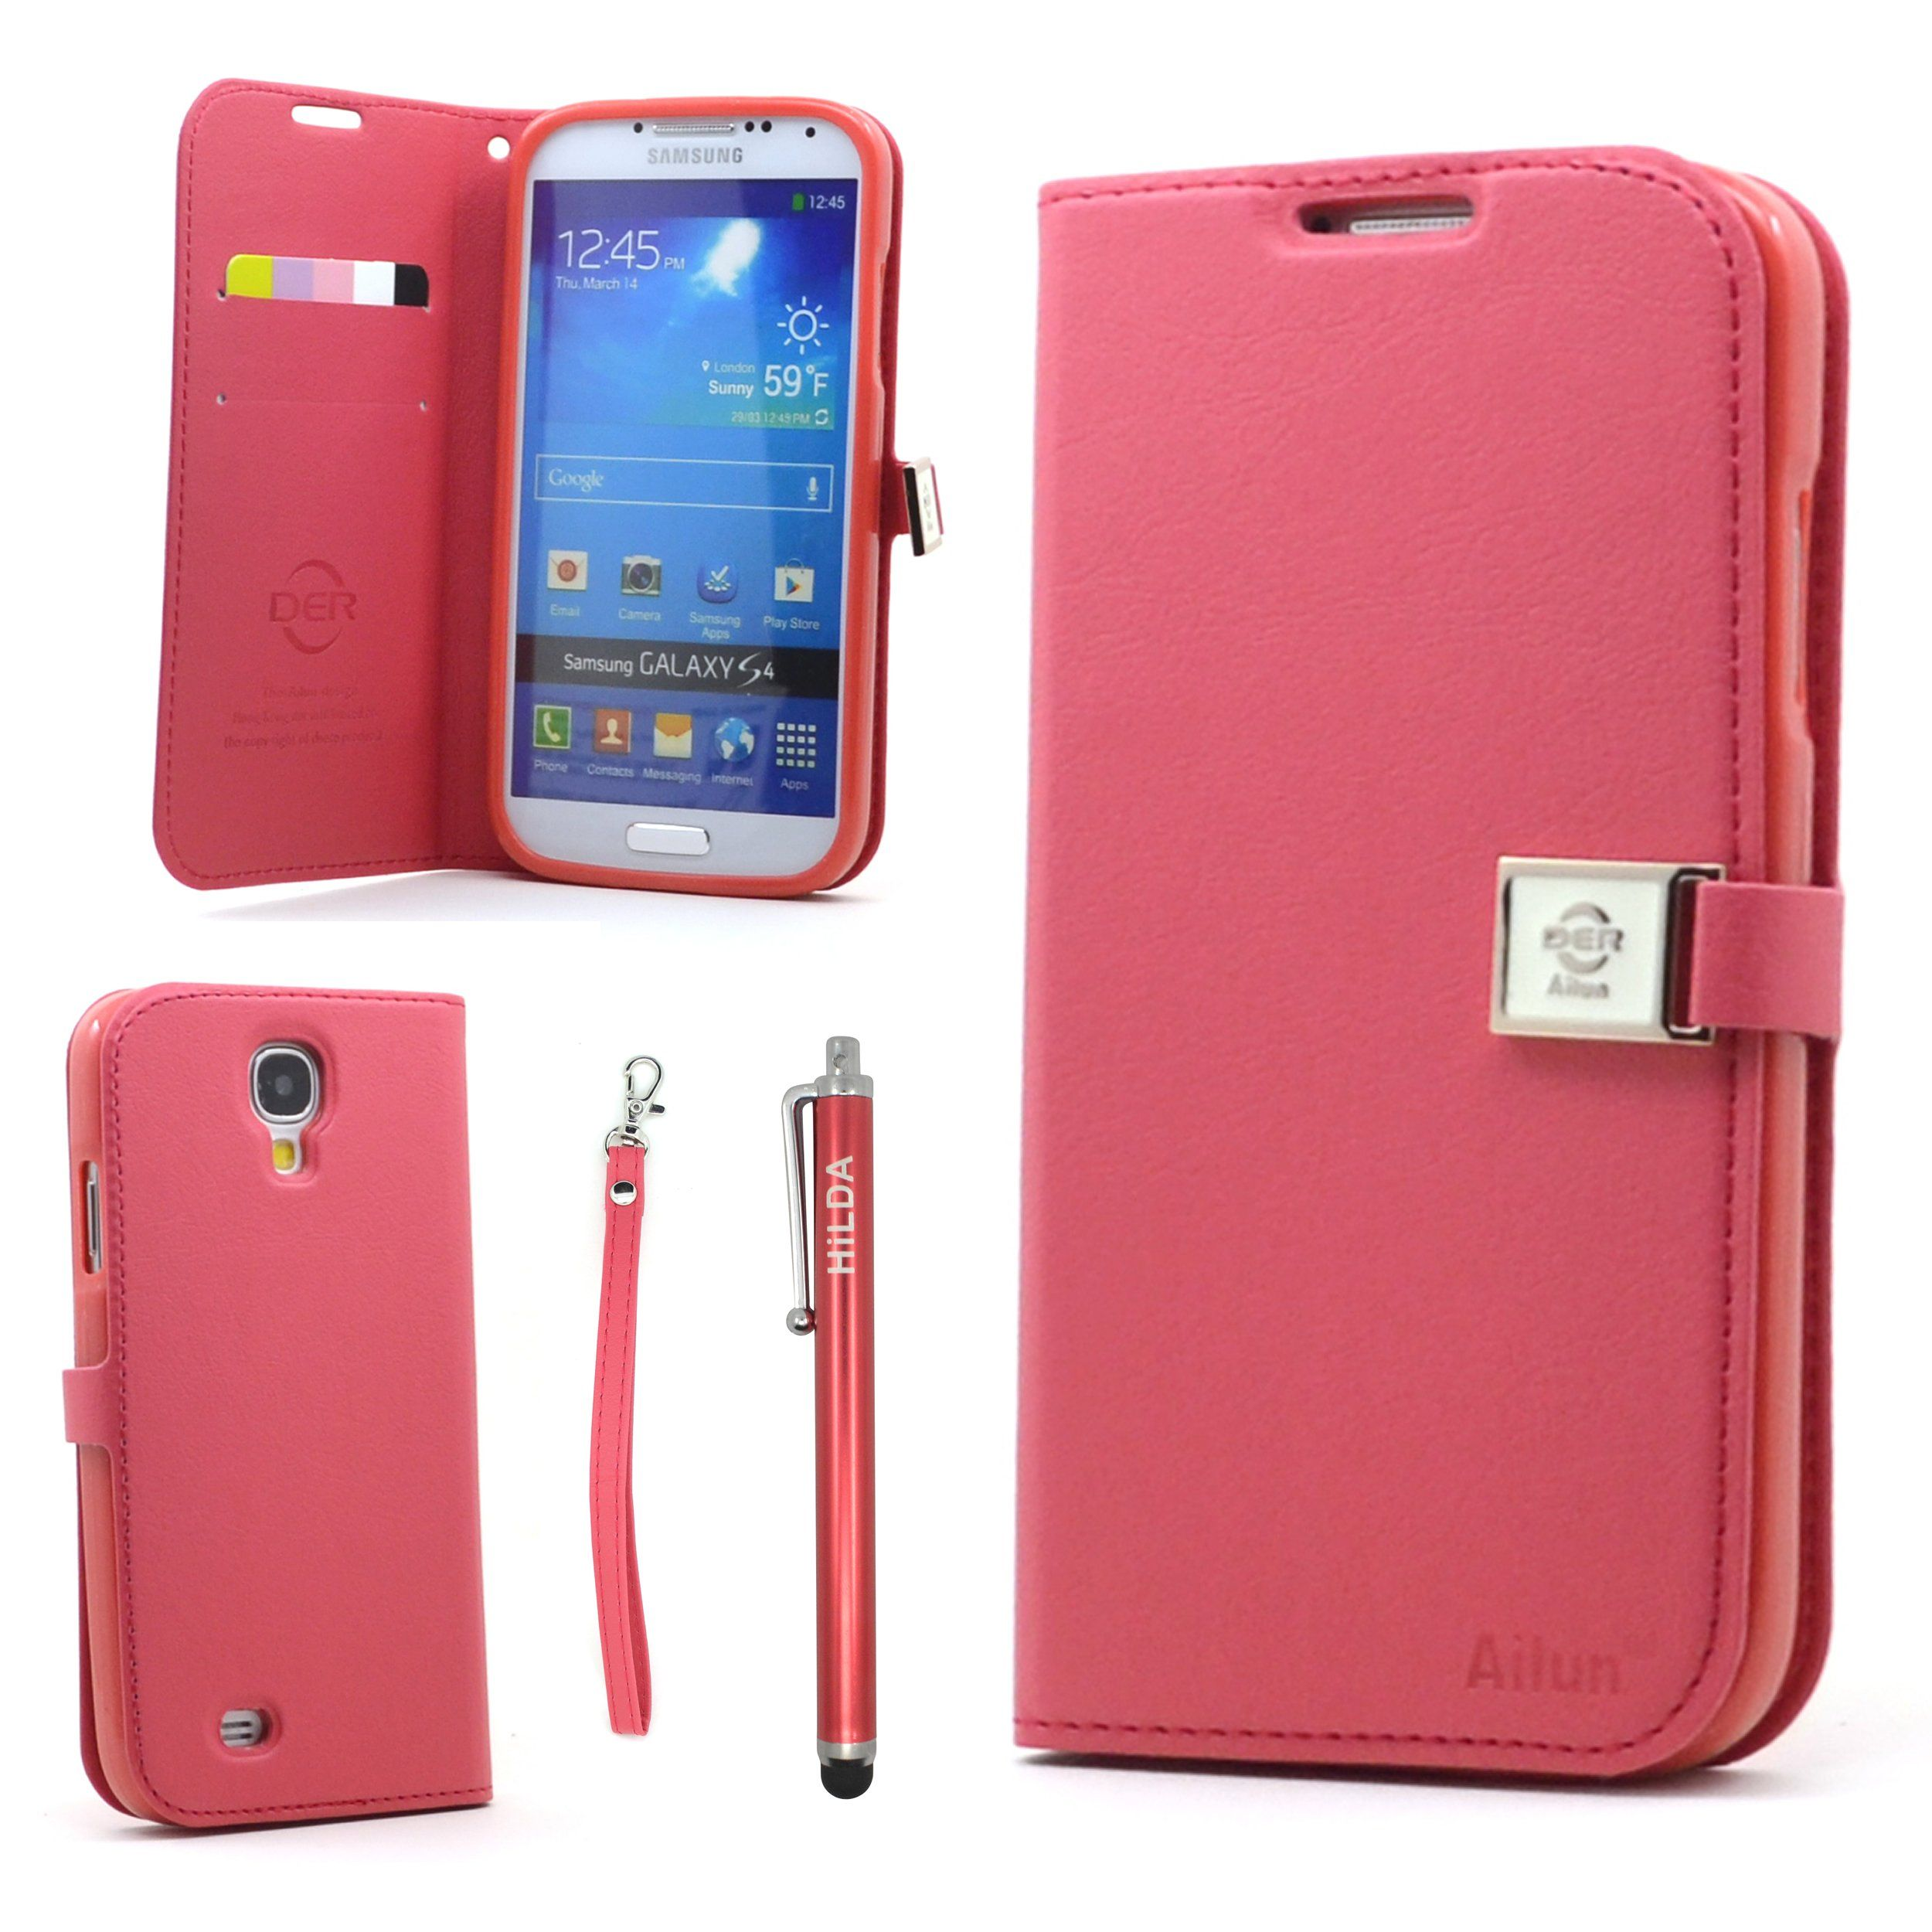 Galaxy S4 Case,By Ailun(TM),Galaxy S4 Wallet Case,Galaxy S4 Leather Case, Credit Card Holder PU Flip Cute Case Cover [Red] whith Screen Protector with Styli Pen:Amazon:Cell Phones & Accessories